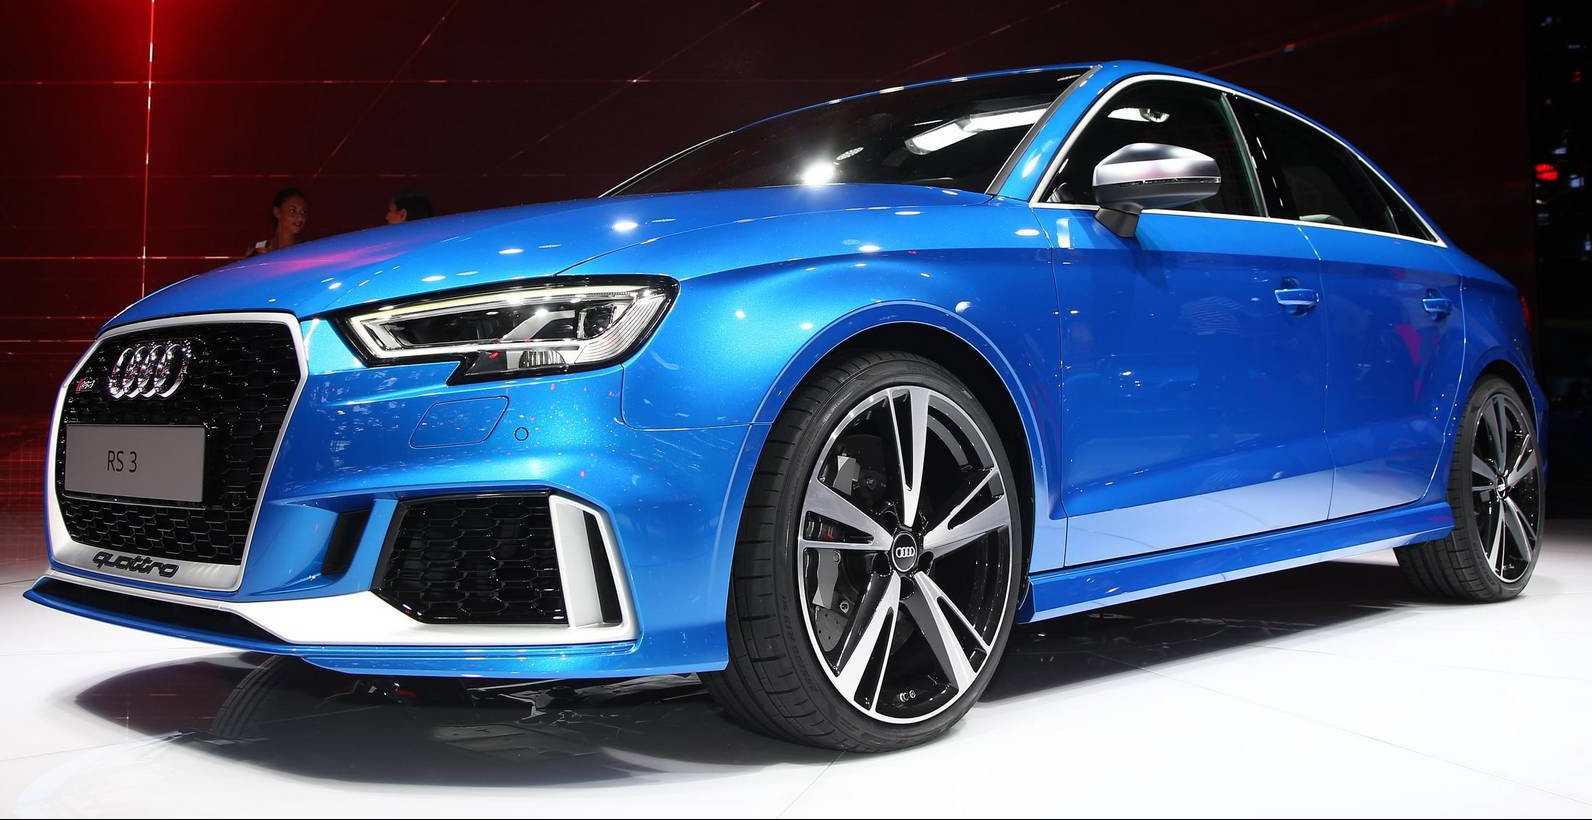 Paris 2016 Audi Rs3 Sedan Gtspirit